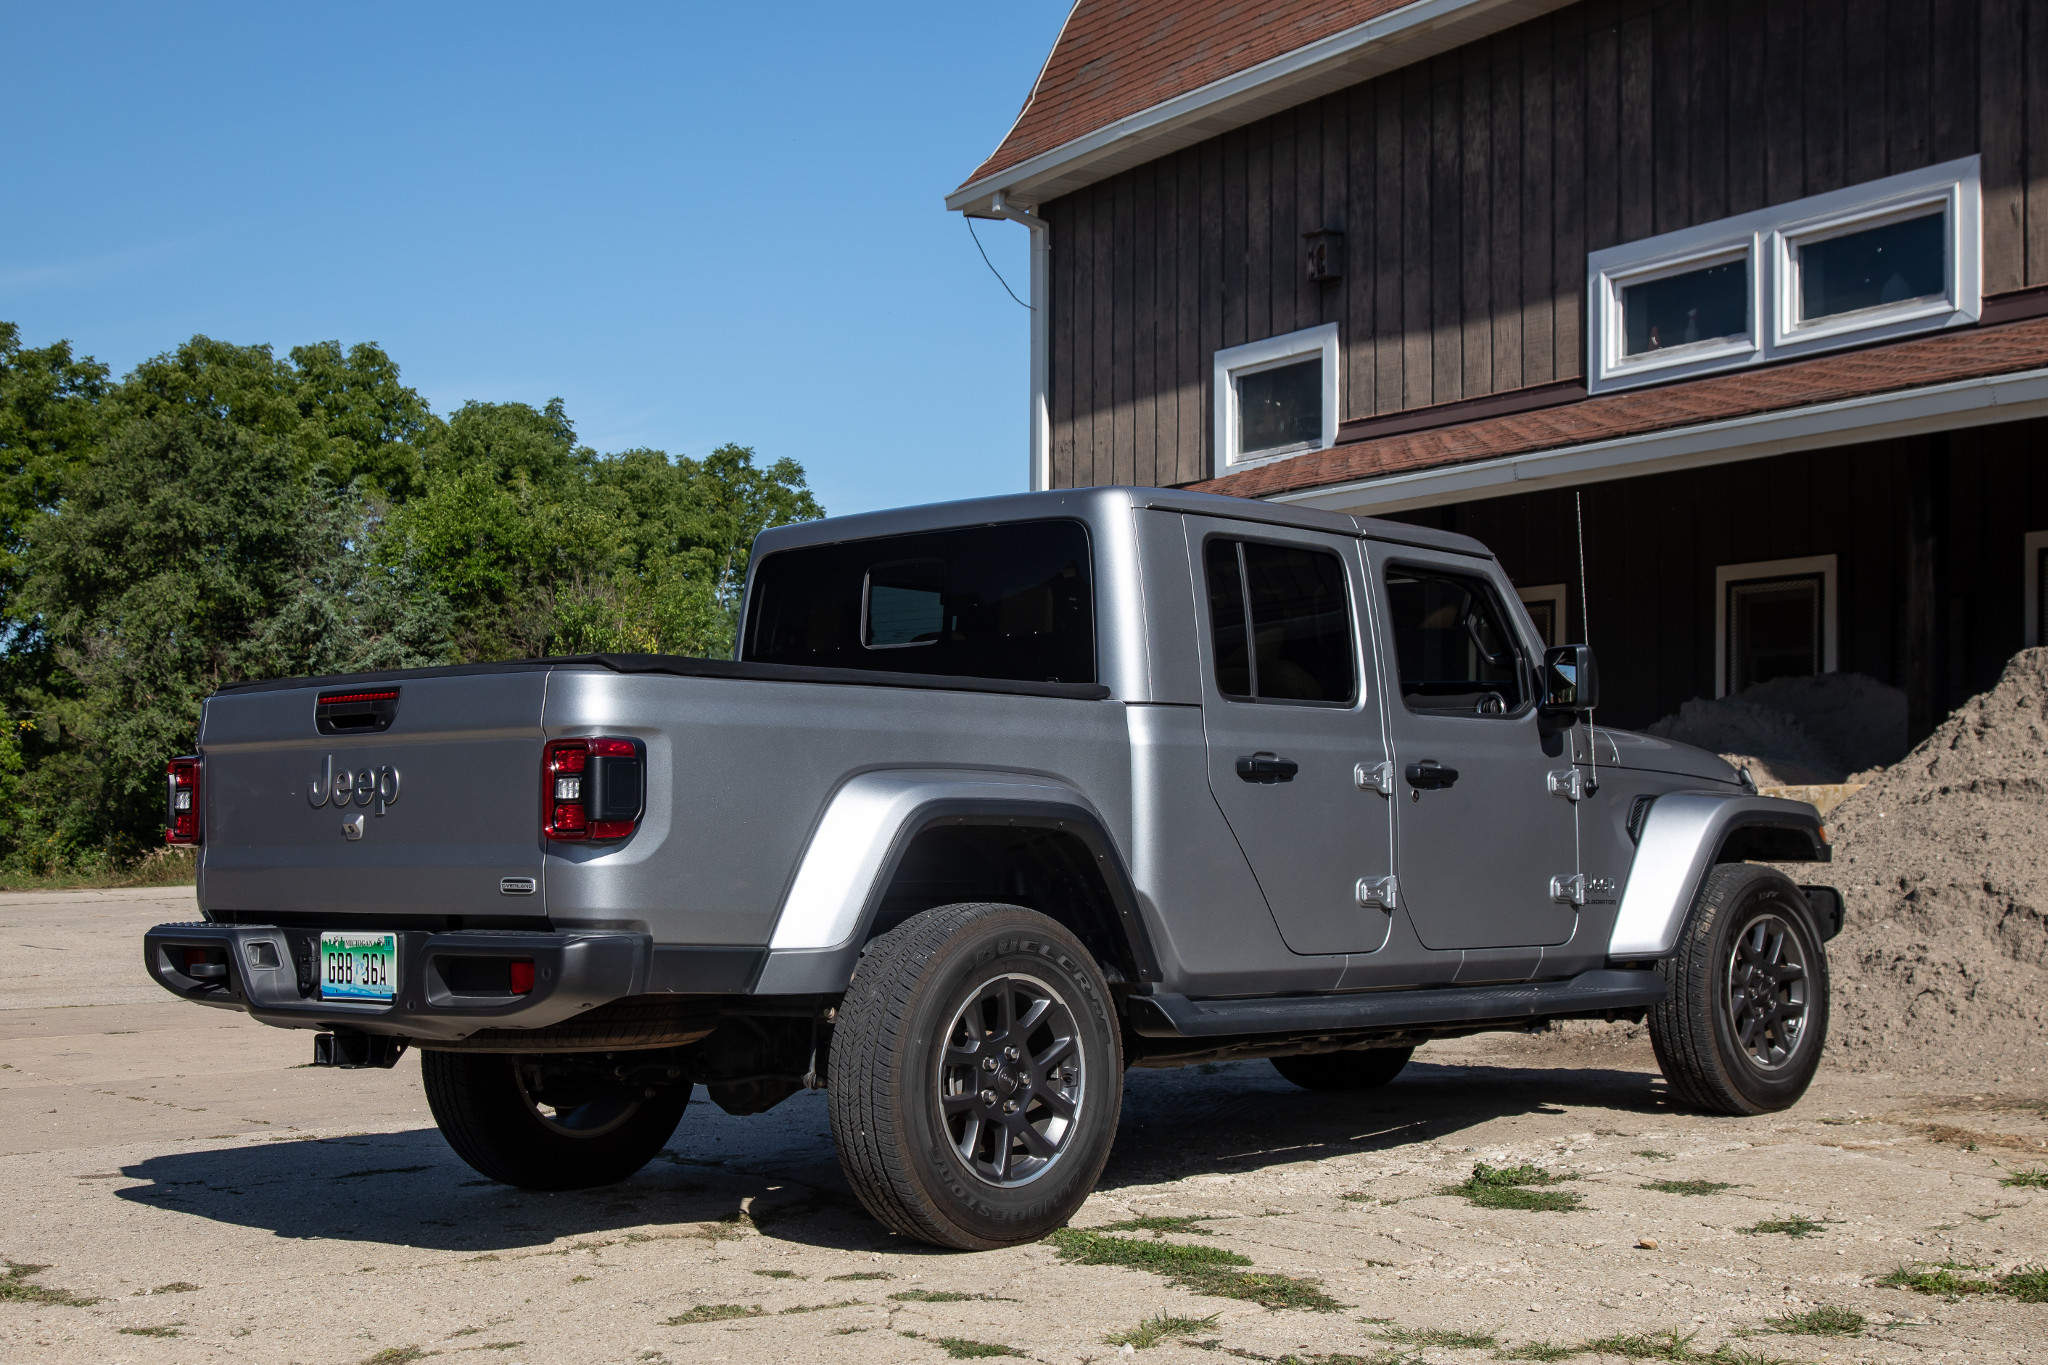 2020 Jeep Gladiator Review: Unique, Expensive and Massively Entertaining